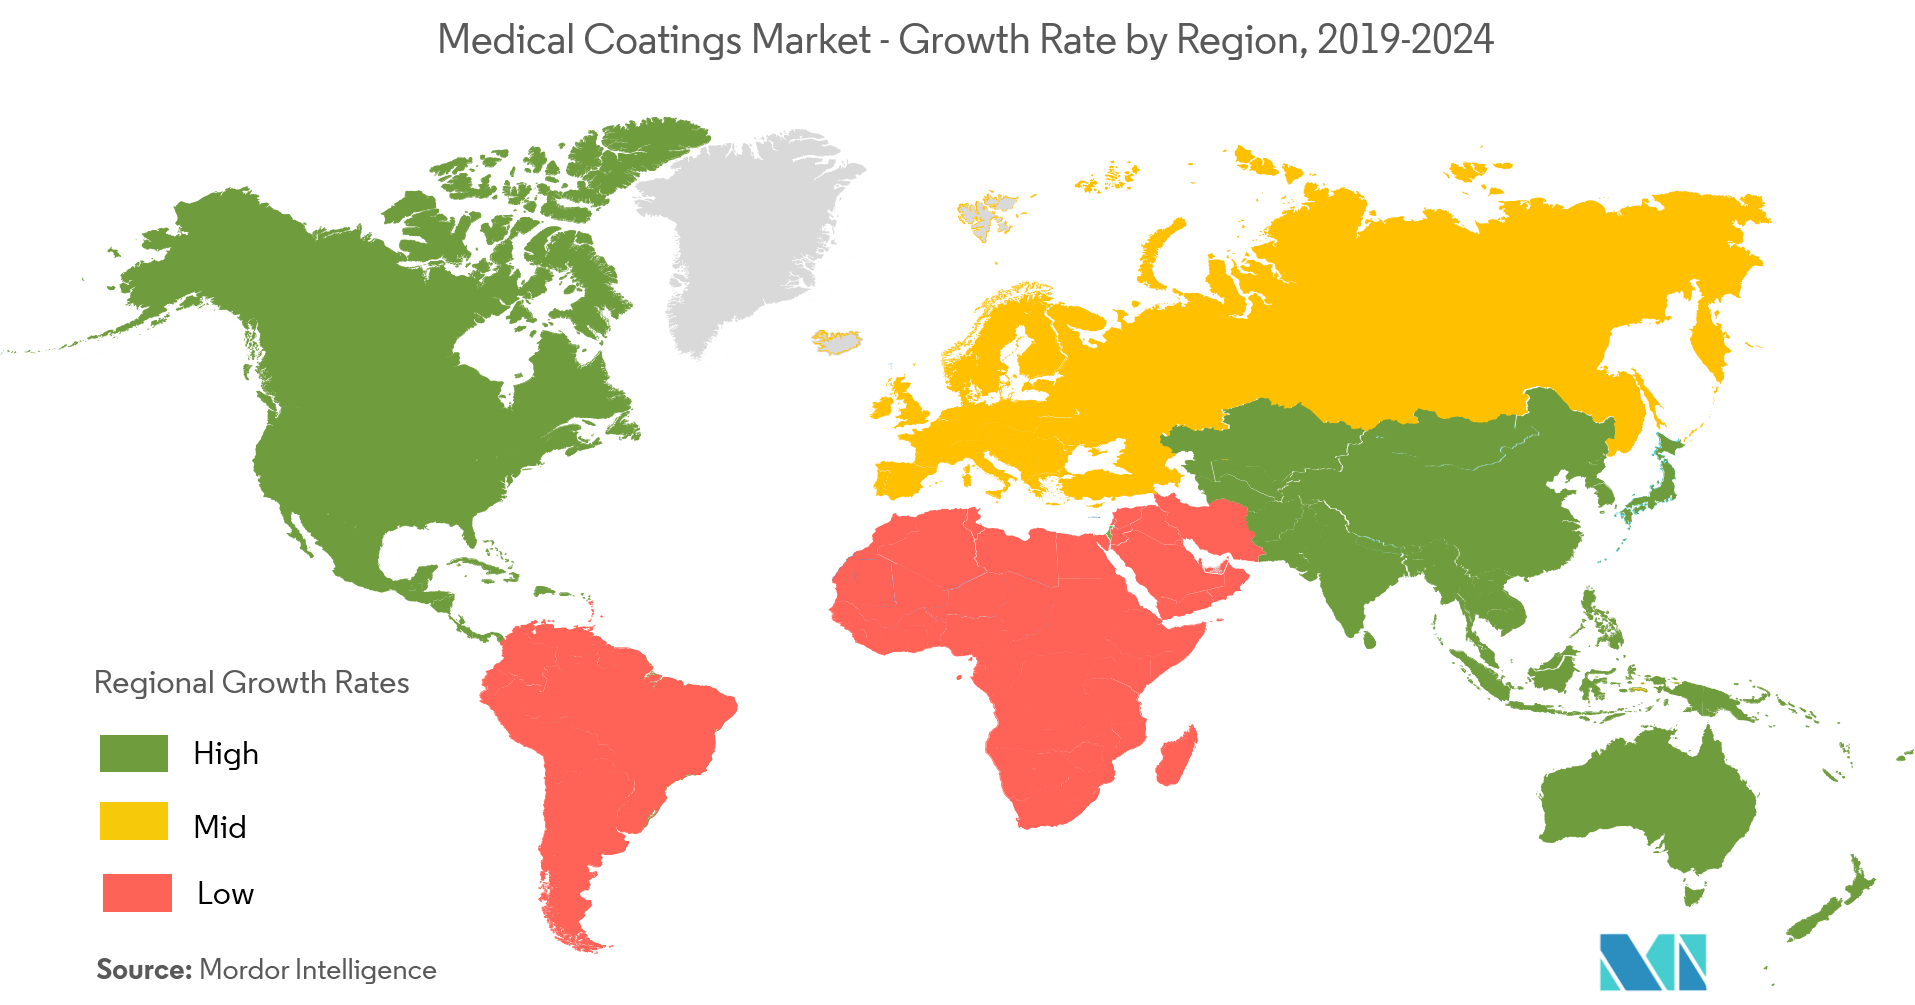 Medical Coatings Market - Regional Trends